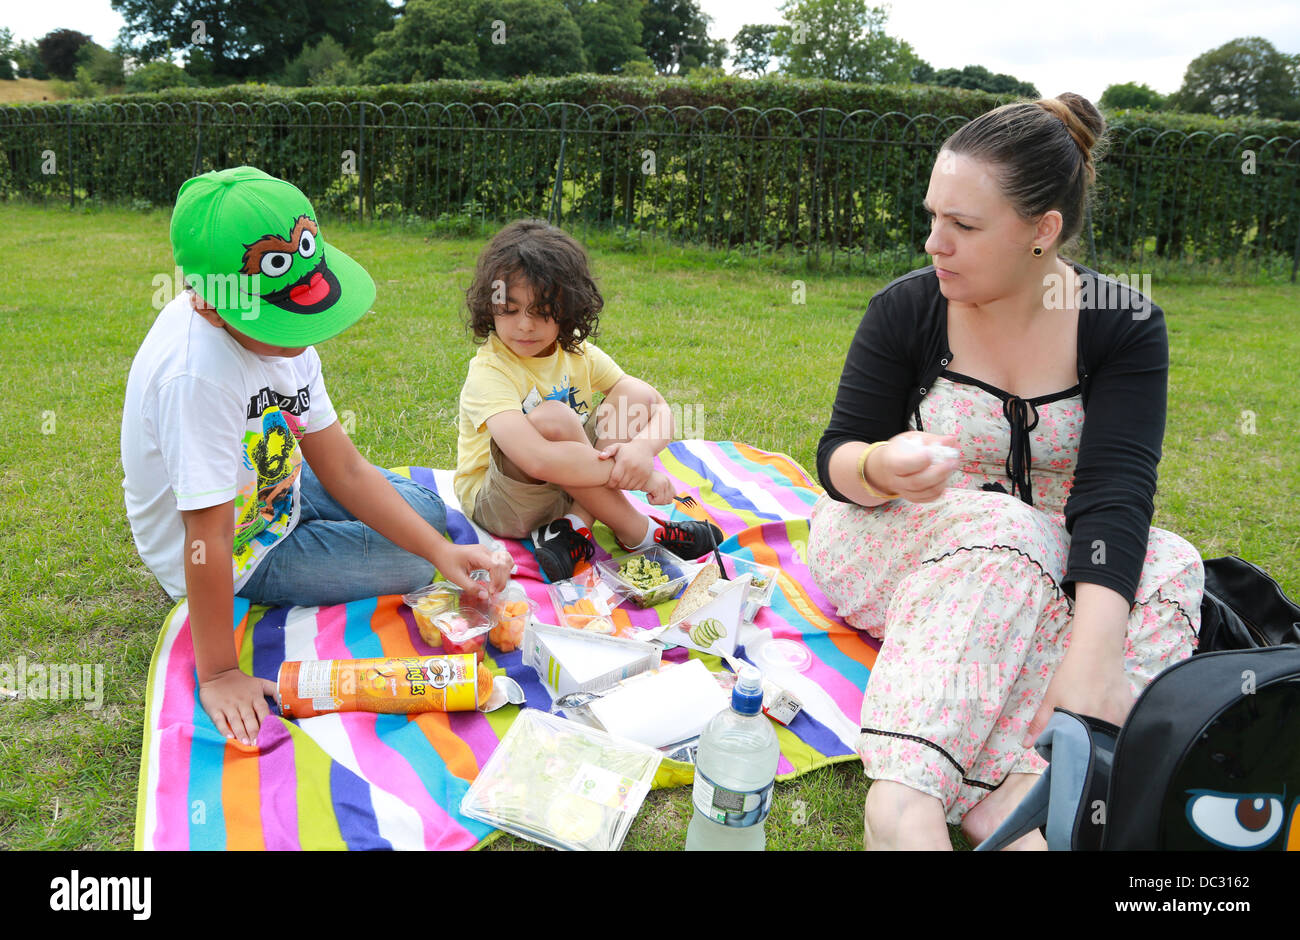 Single parent and her two sons having a picnic in the park - Stock Image